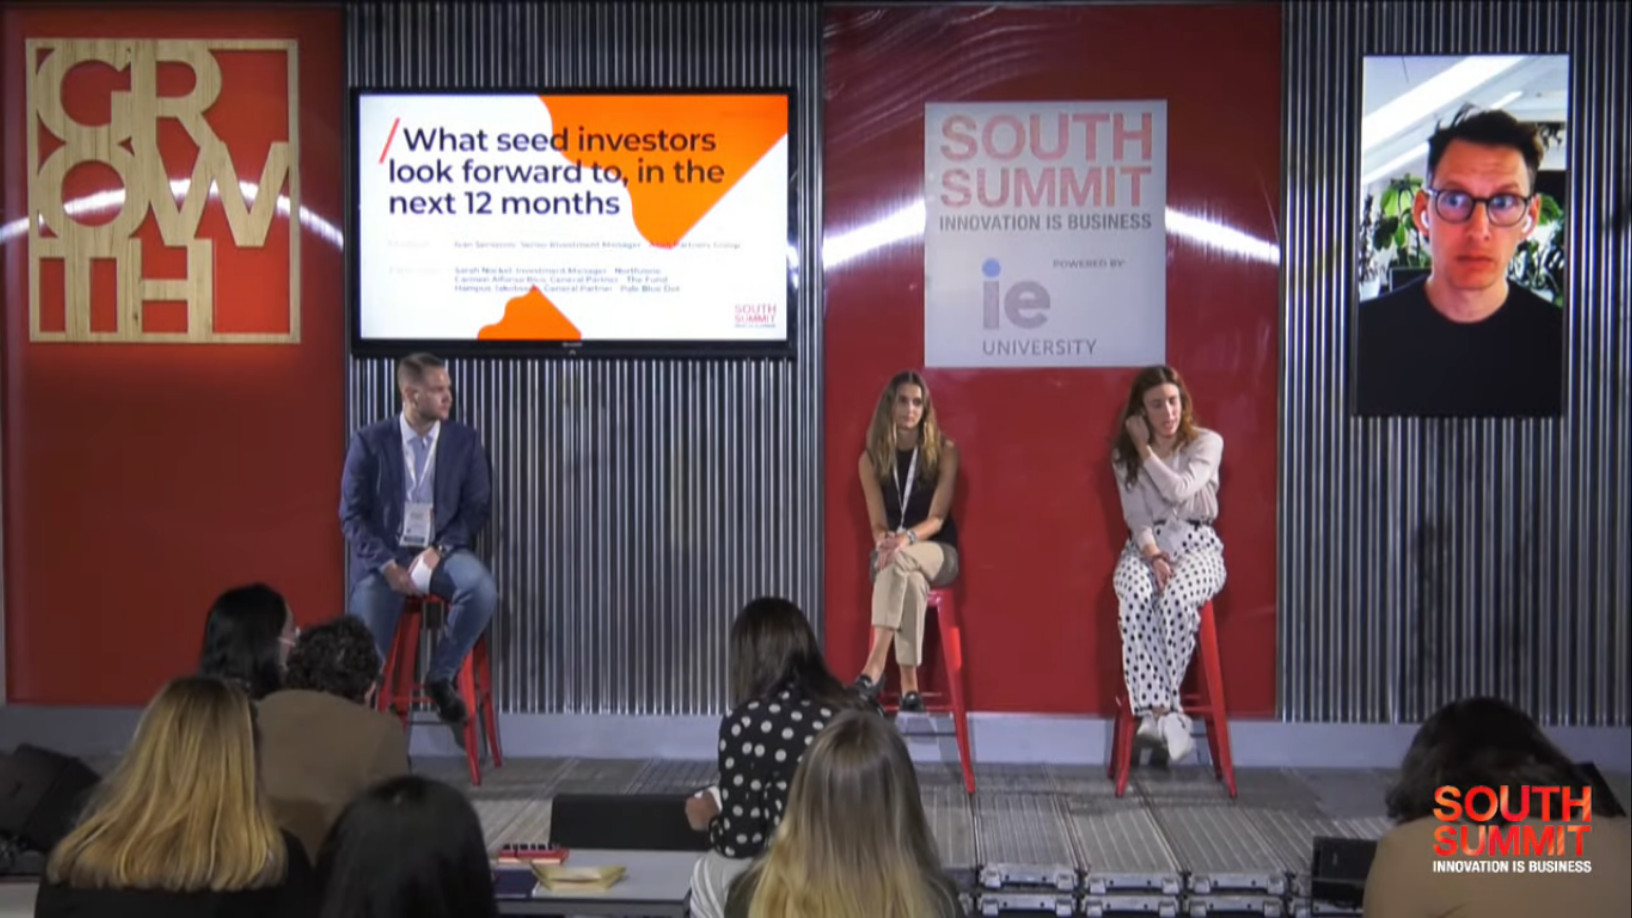 South Summit 2021: European seed investment is booming post-Covid